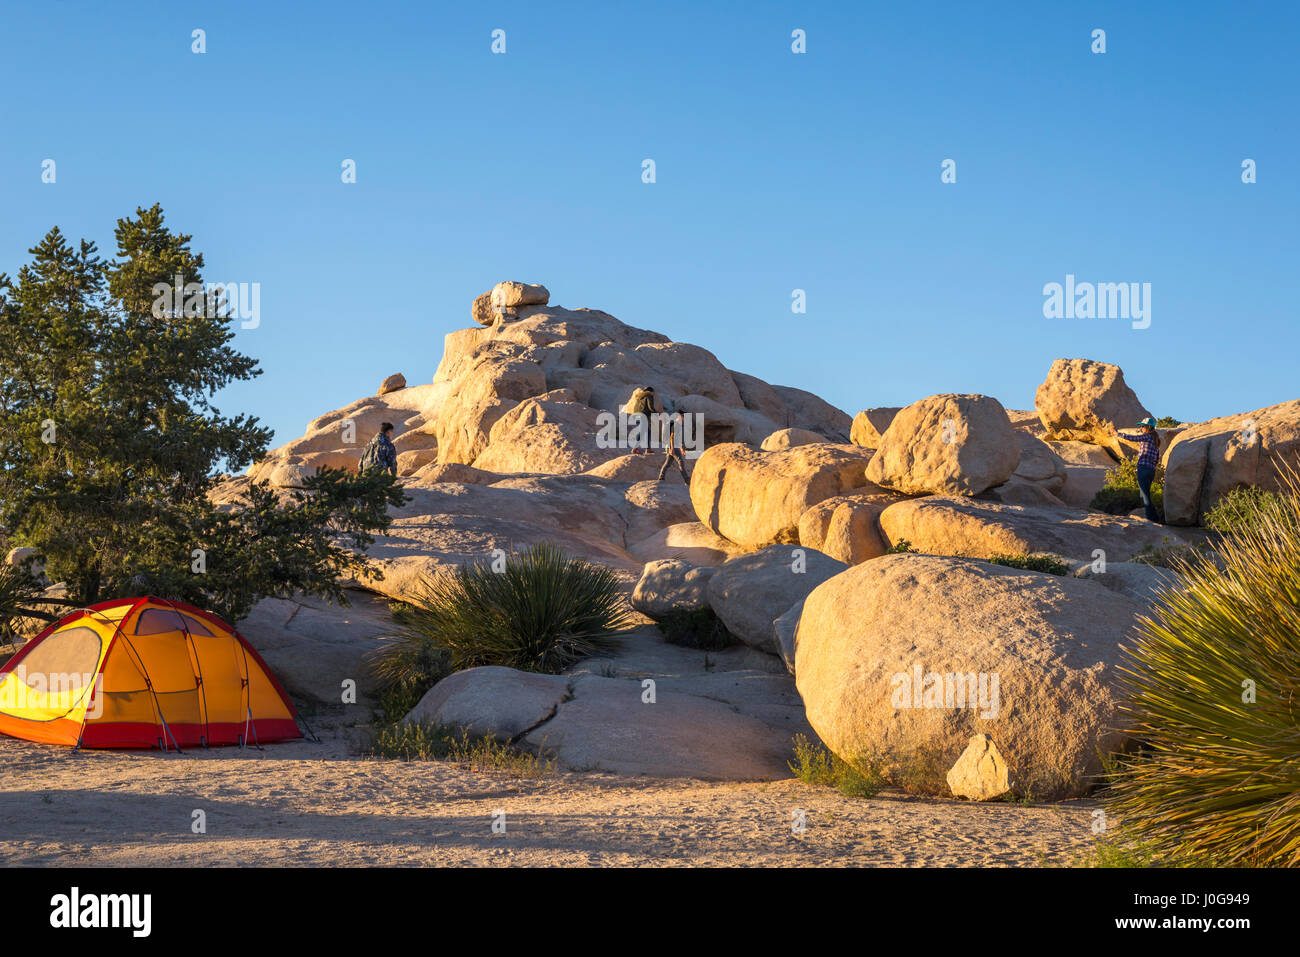 Camping Zelt am Campingplatz Bereich. Joshua Tree Nationalpark, Kalifornien, USA. Stockfoto